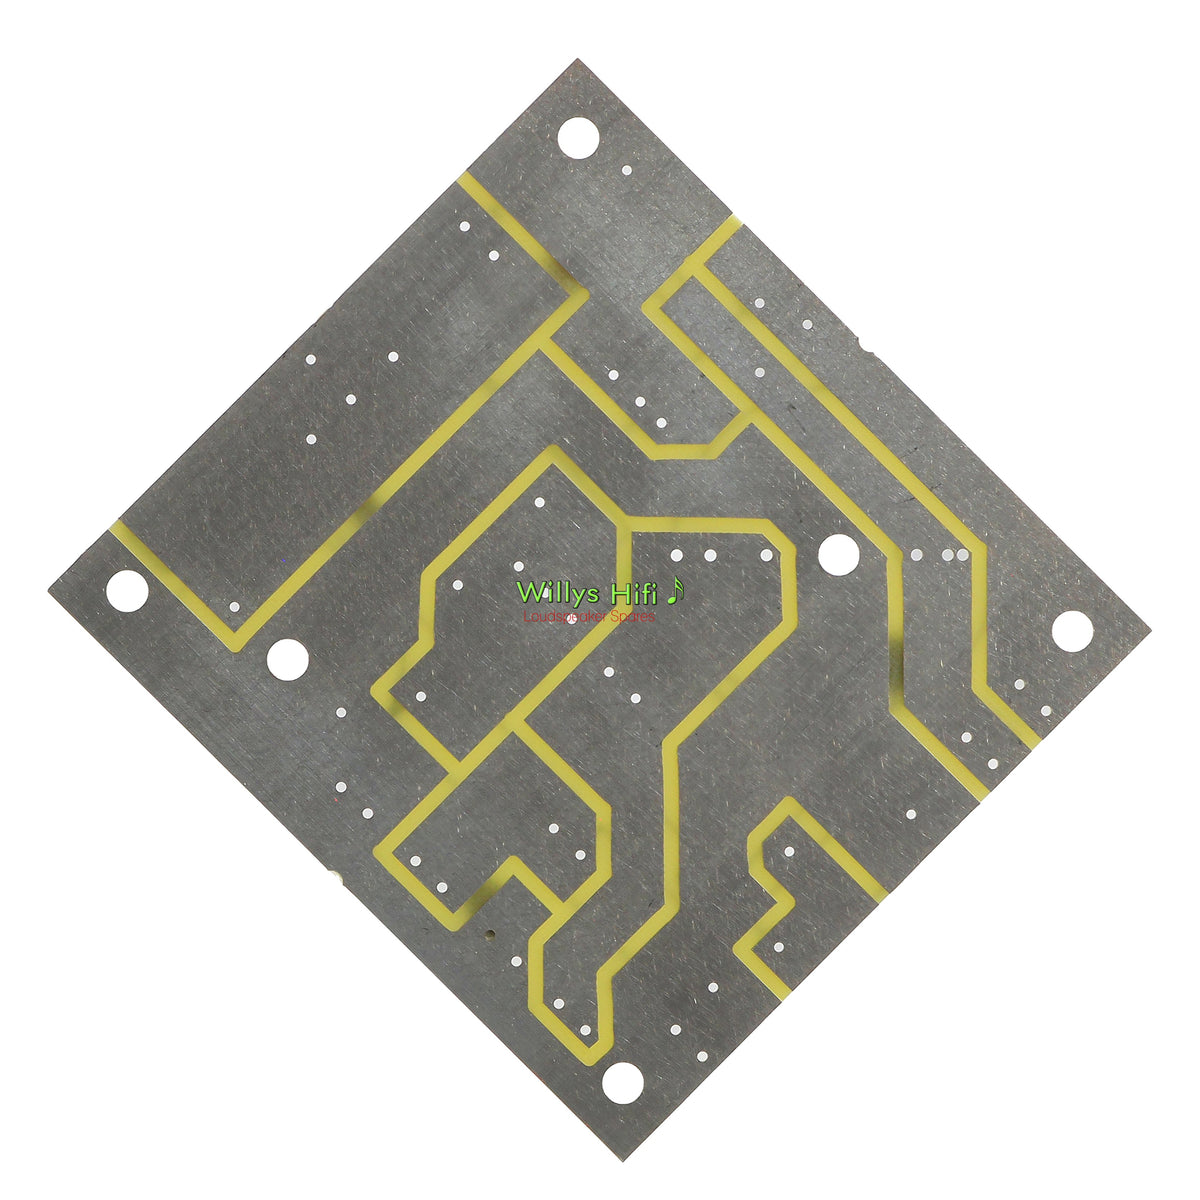 Intertechnik 2 Way Crossover PCB 1500634 rear view